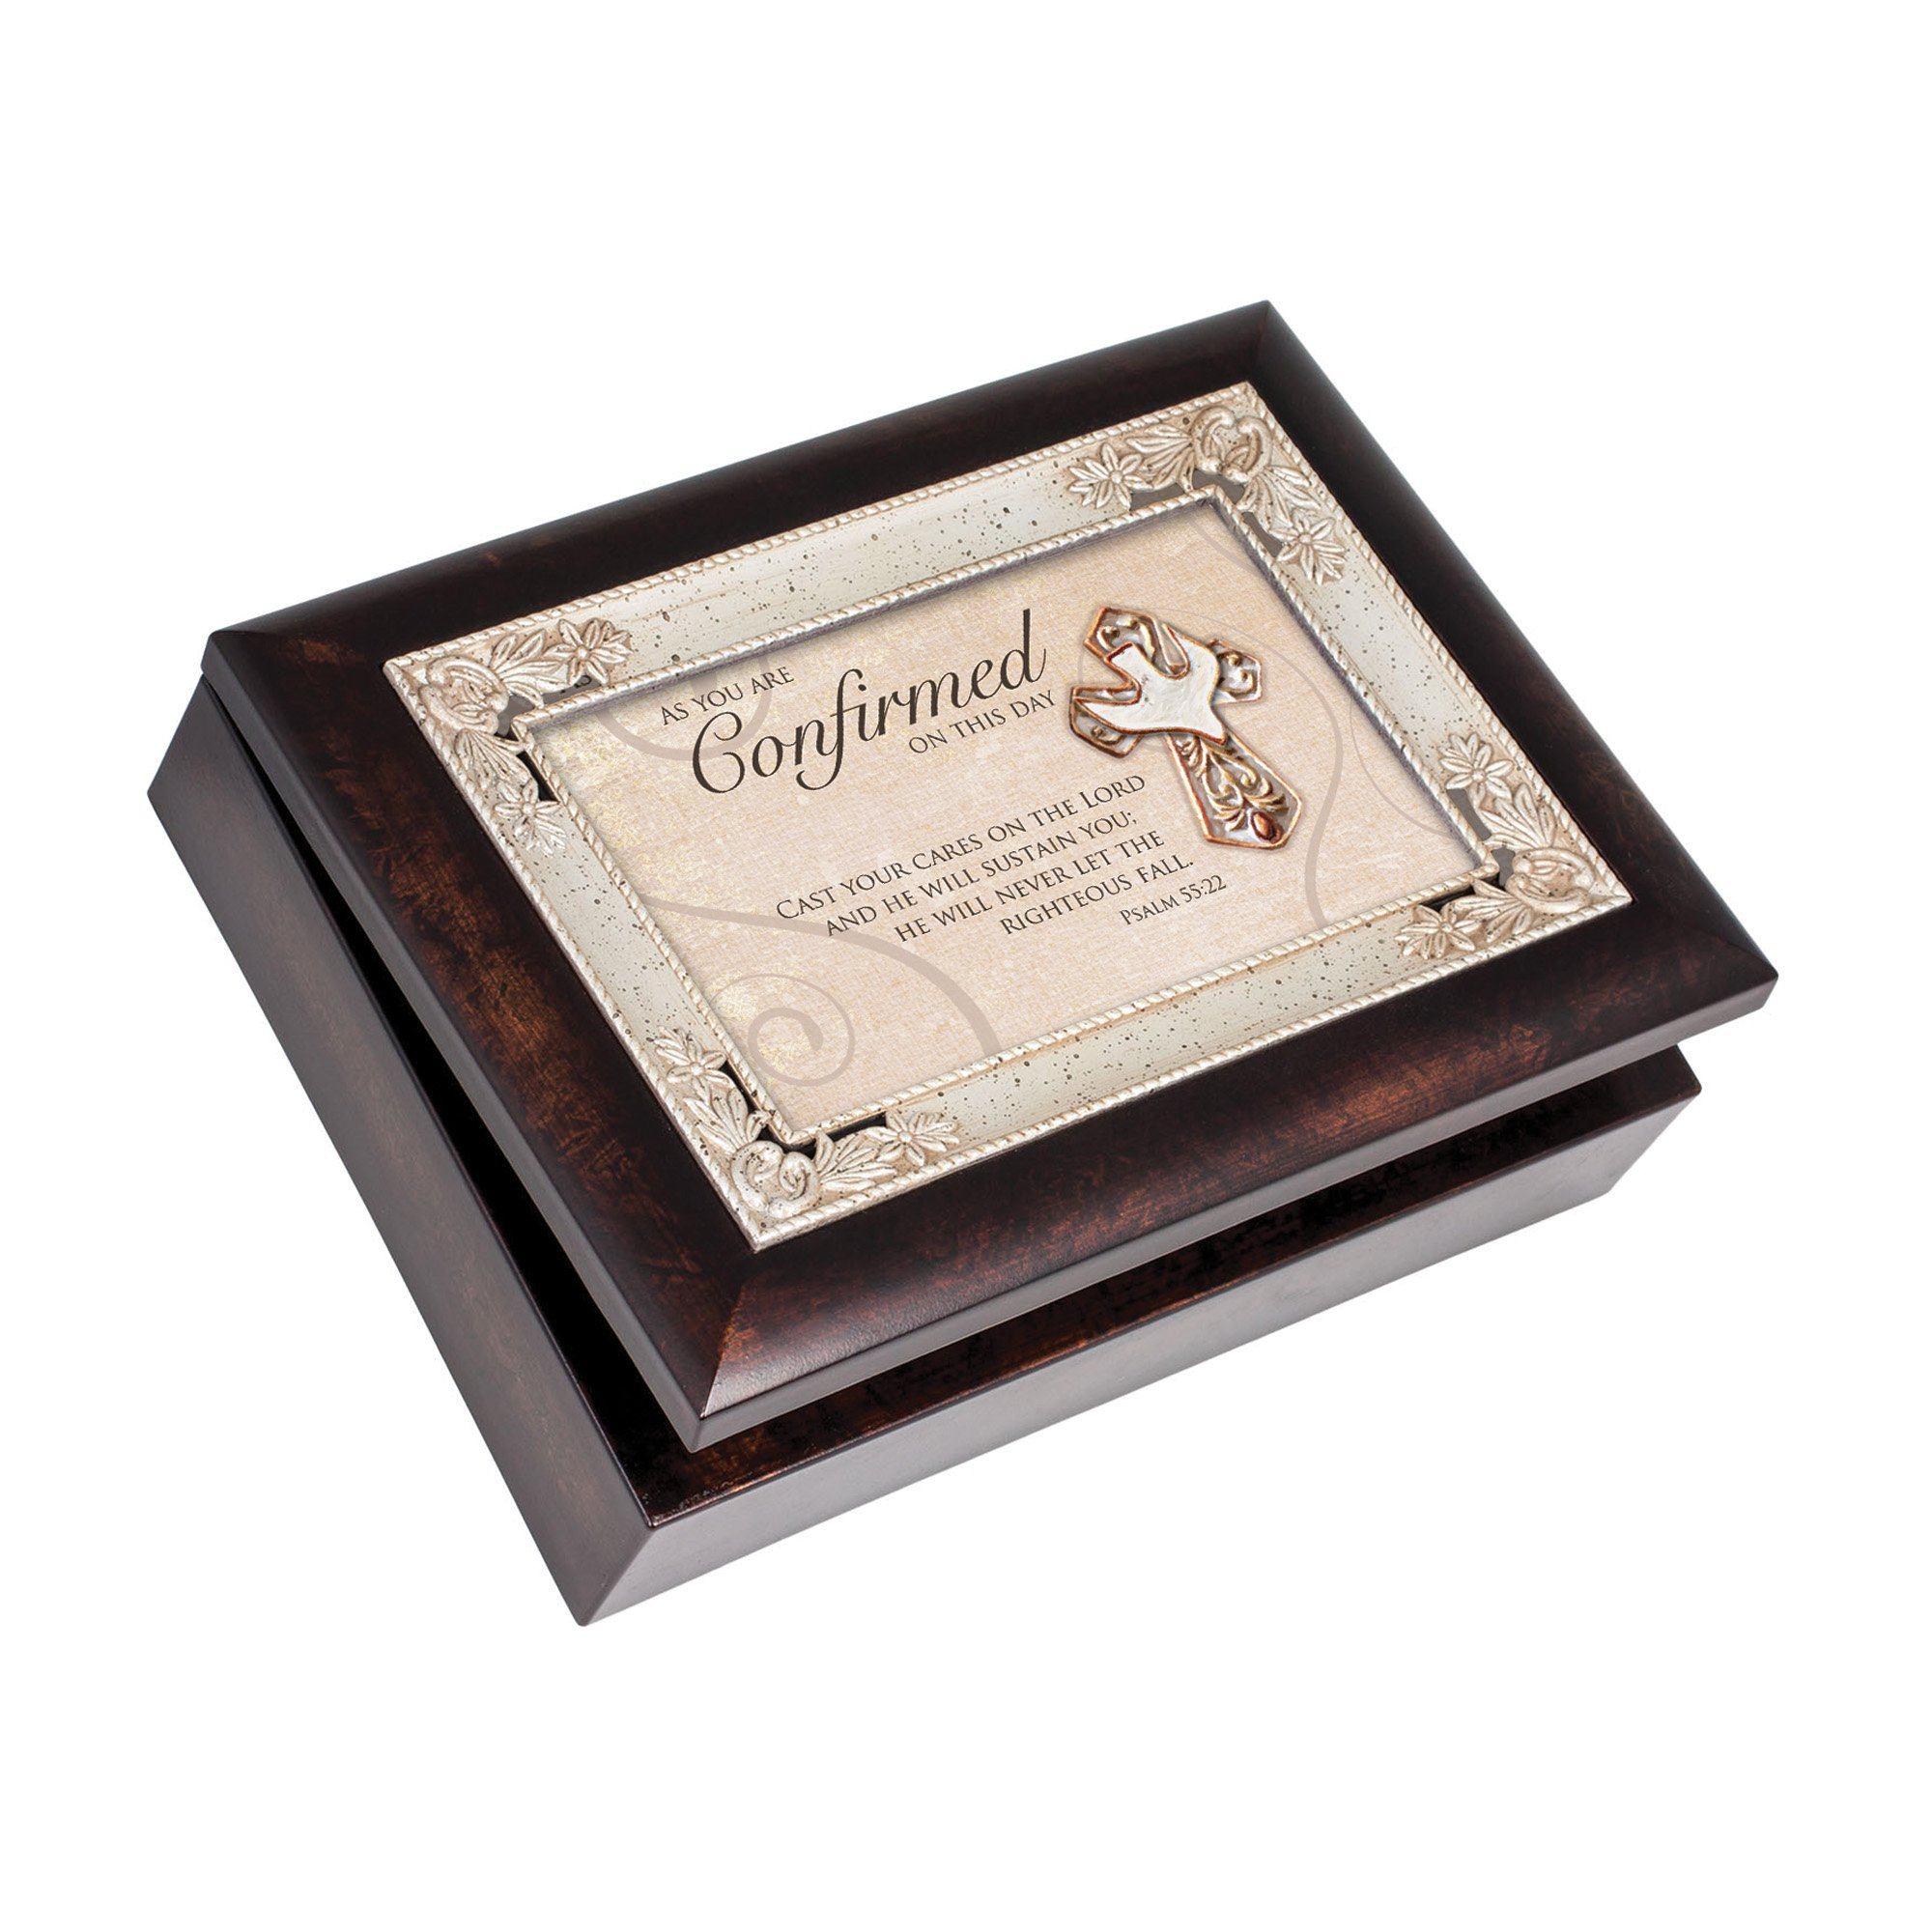 Cottage Garden Italian Inspired Inspirational Music Box - Confirmation Plays Amazing Grace